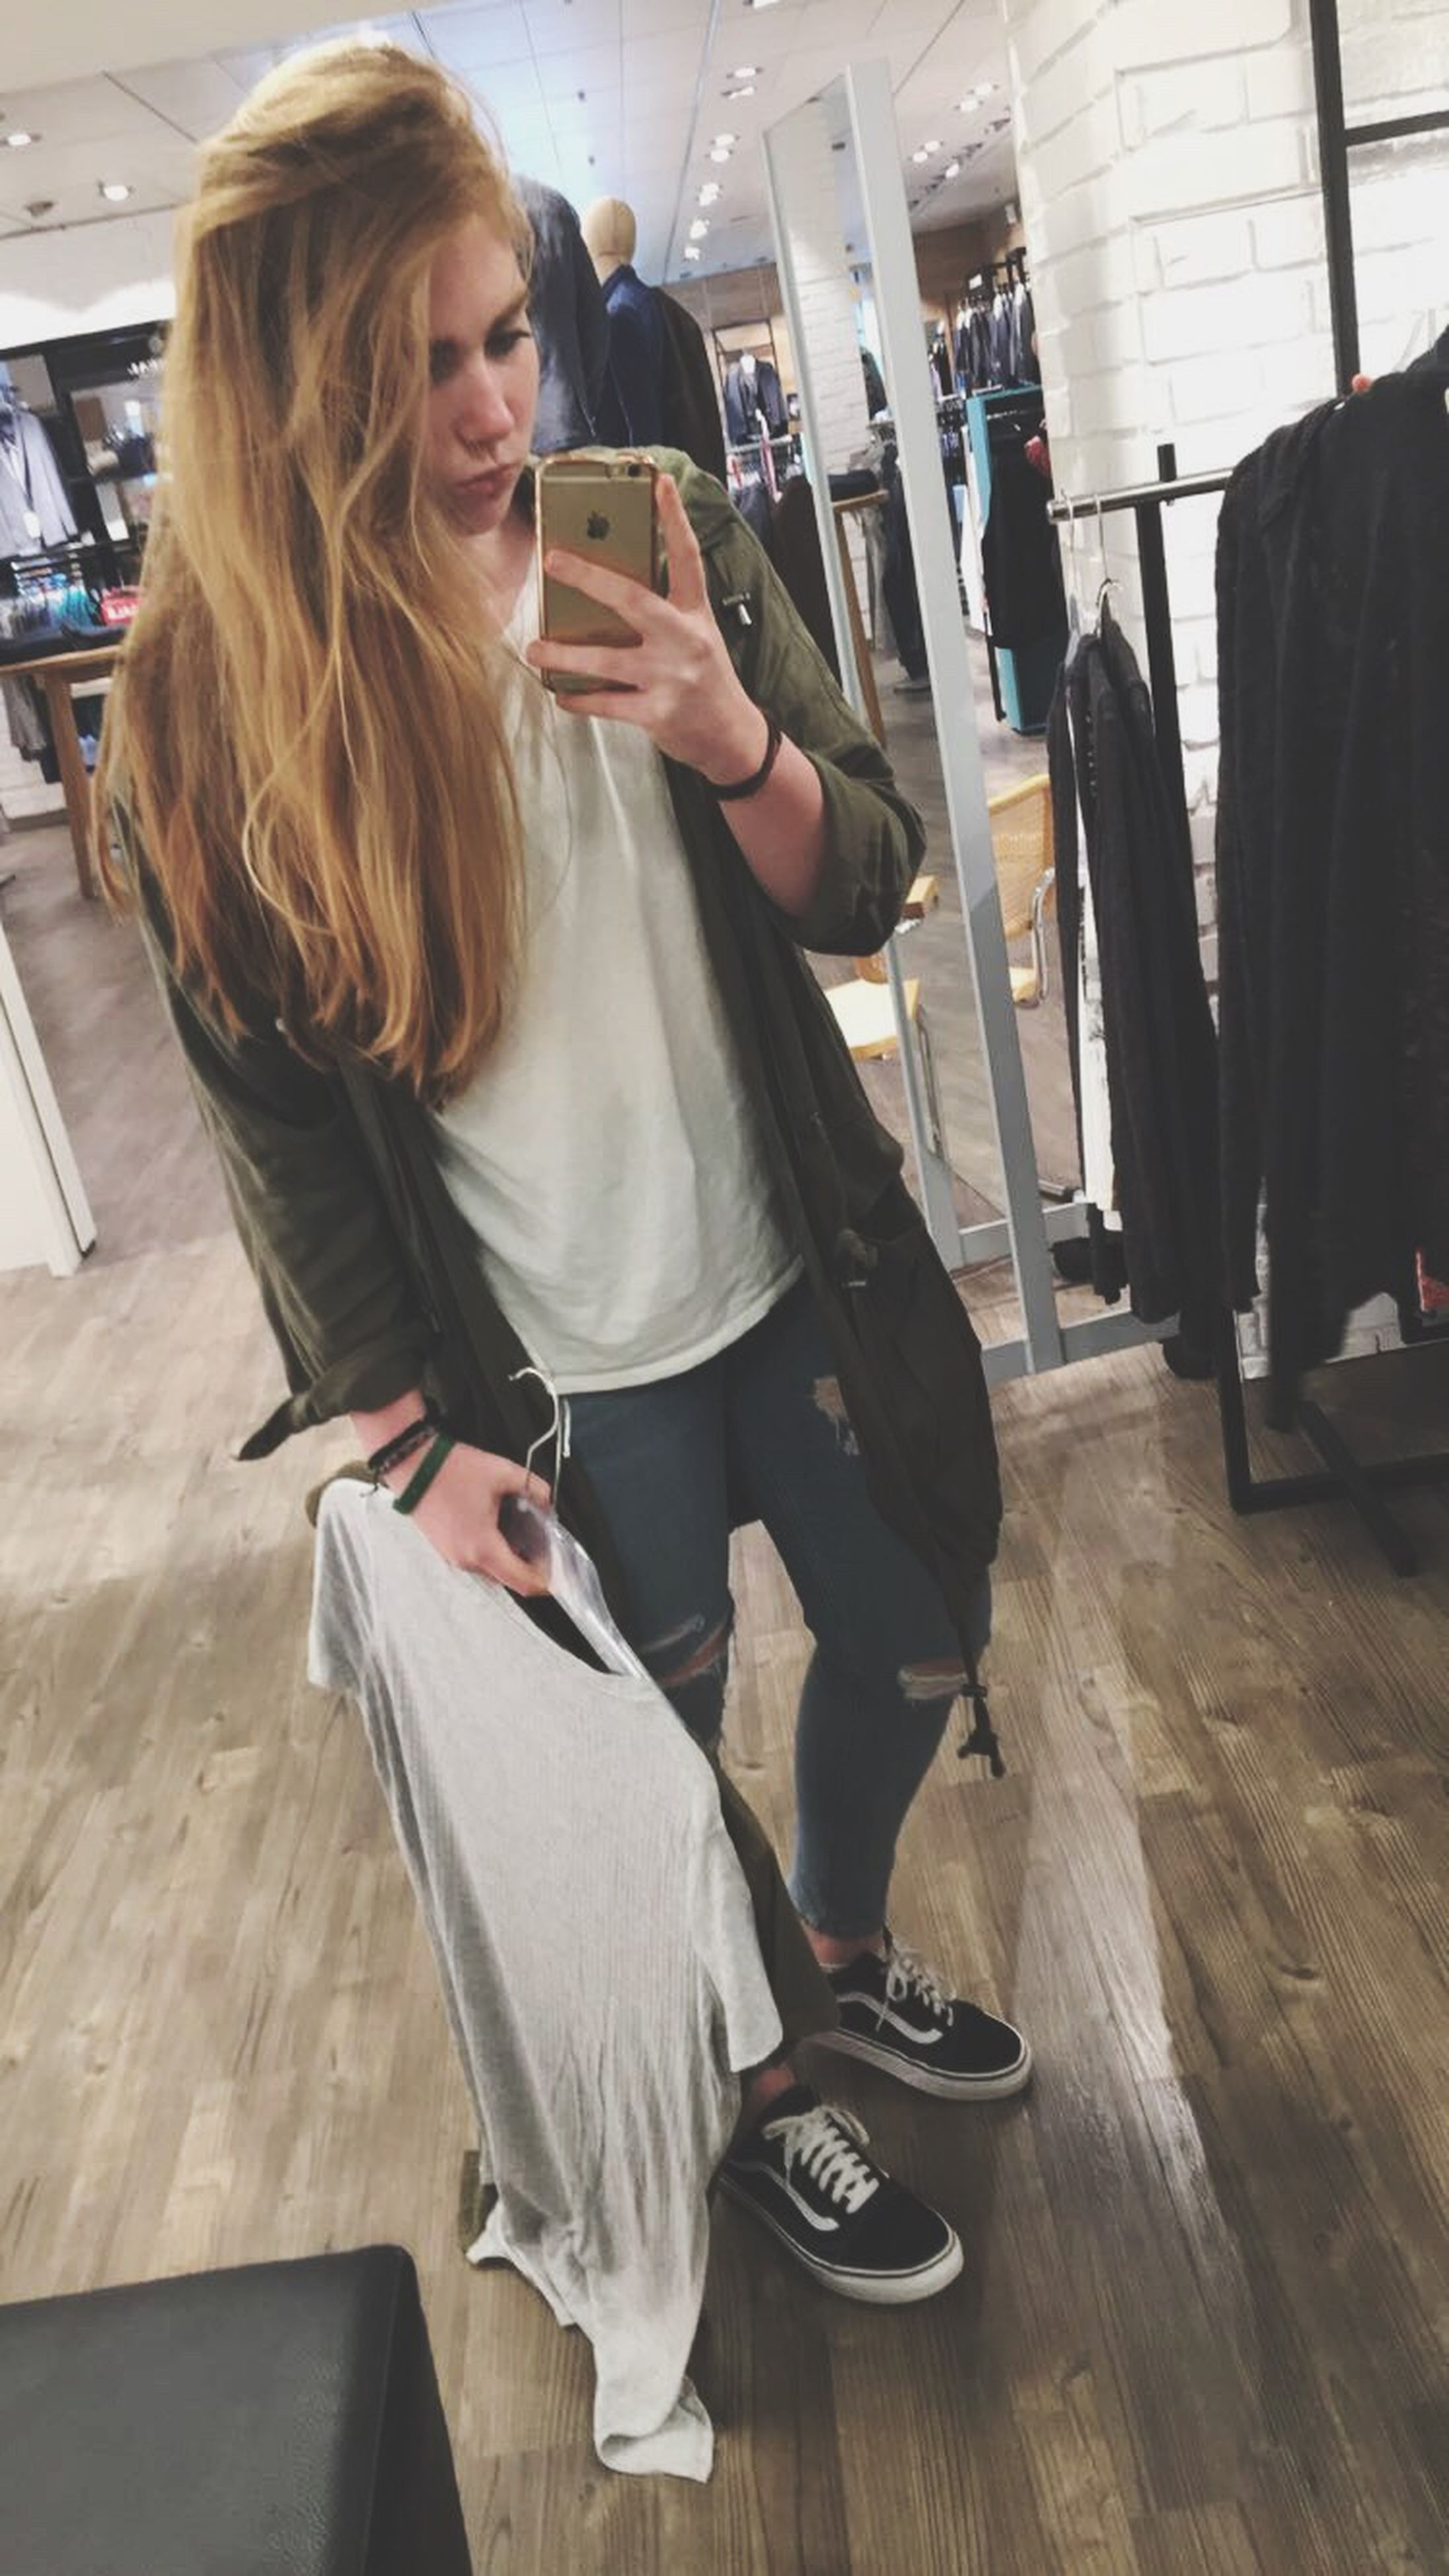 lifestyles, casual clothing, person, leisure activity, sitting, playing, young women, front view, young adult, long hair, day